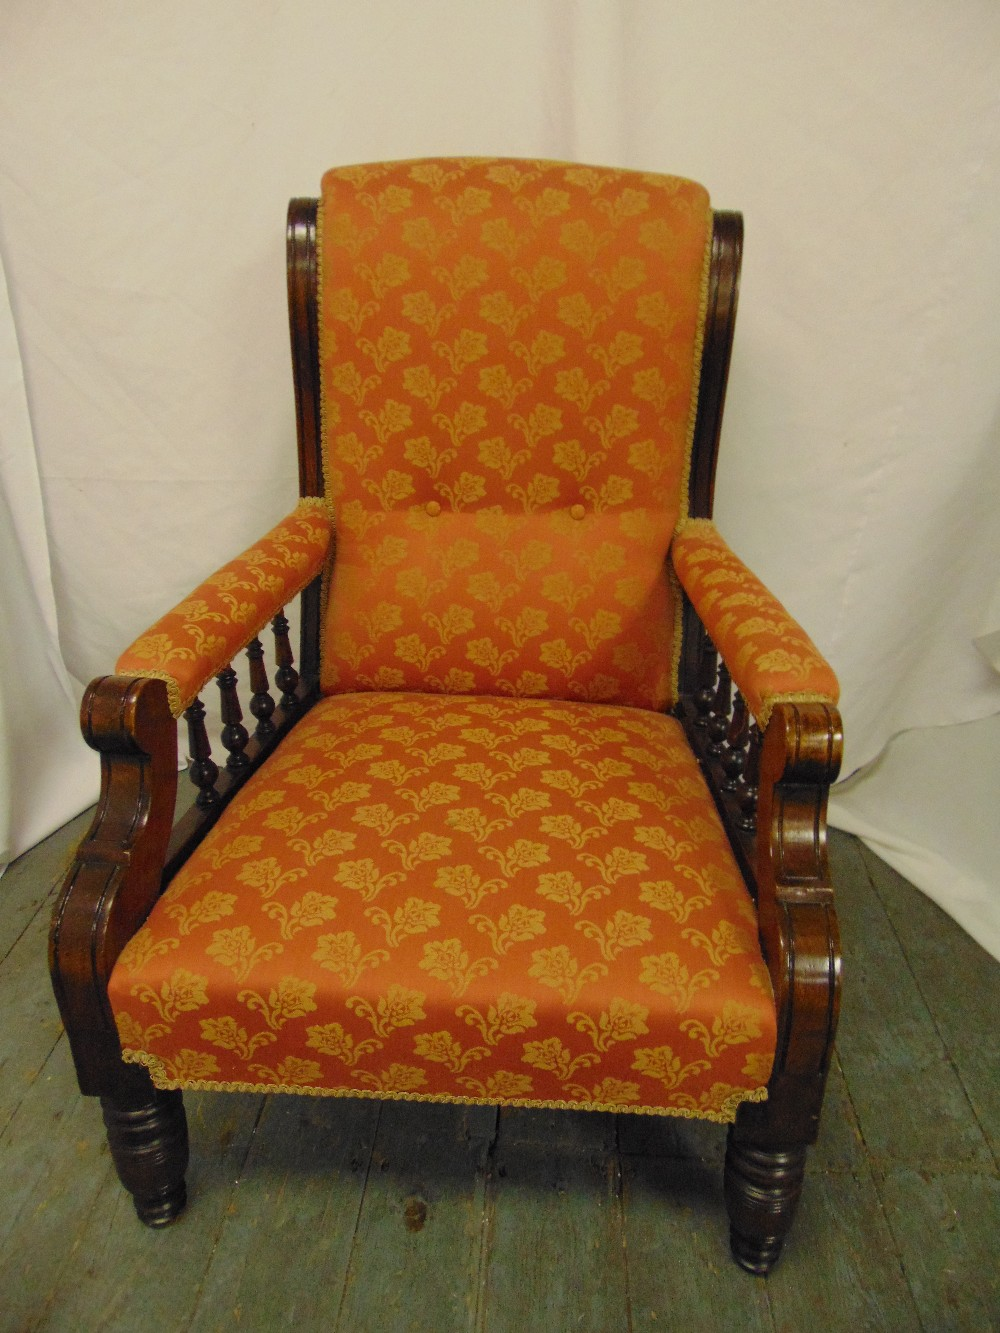 Lot 28 - A Victorian mahogany upholstered armchair with galleried arms on turned cylindrical legs